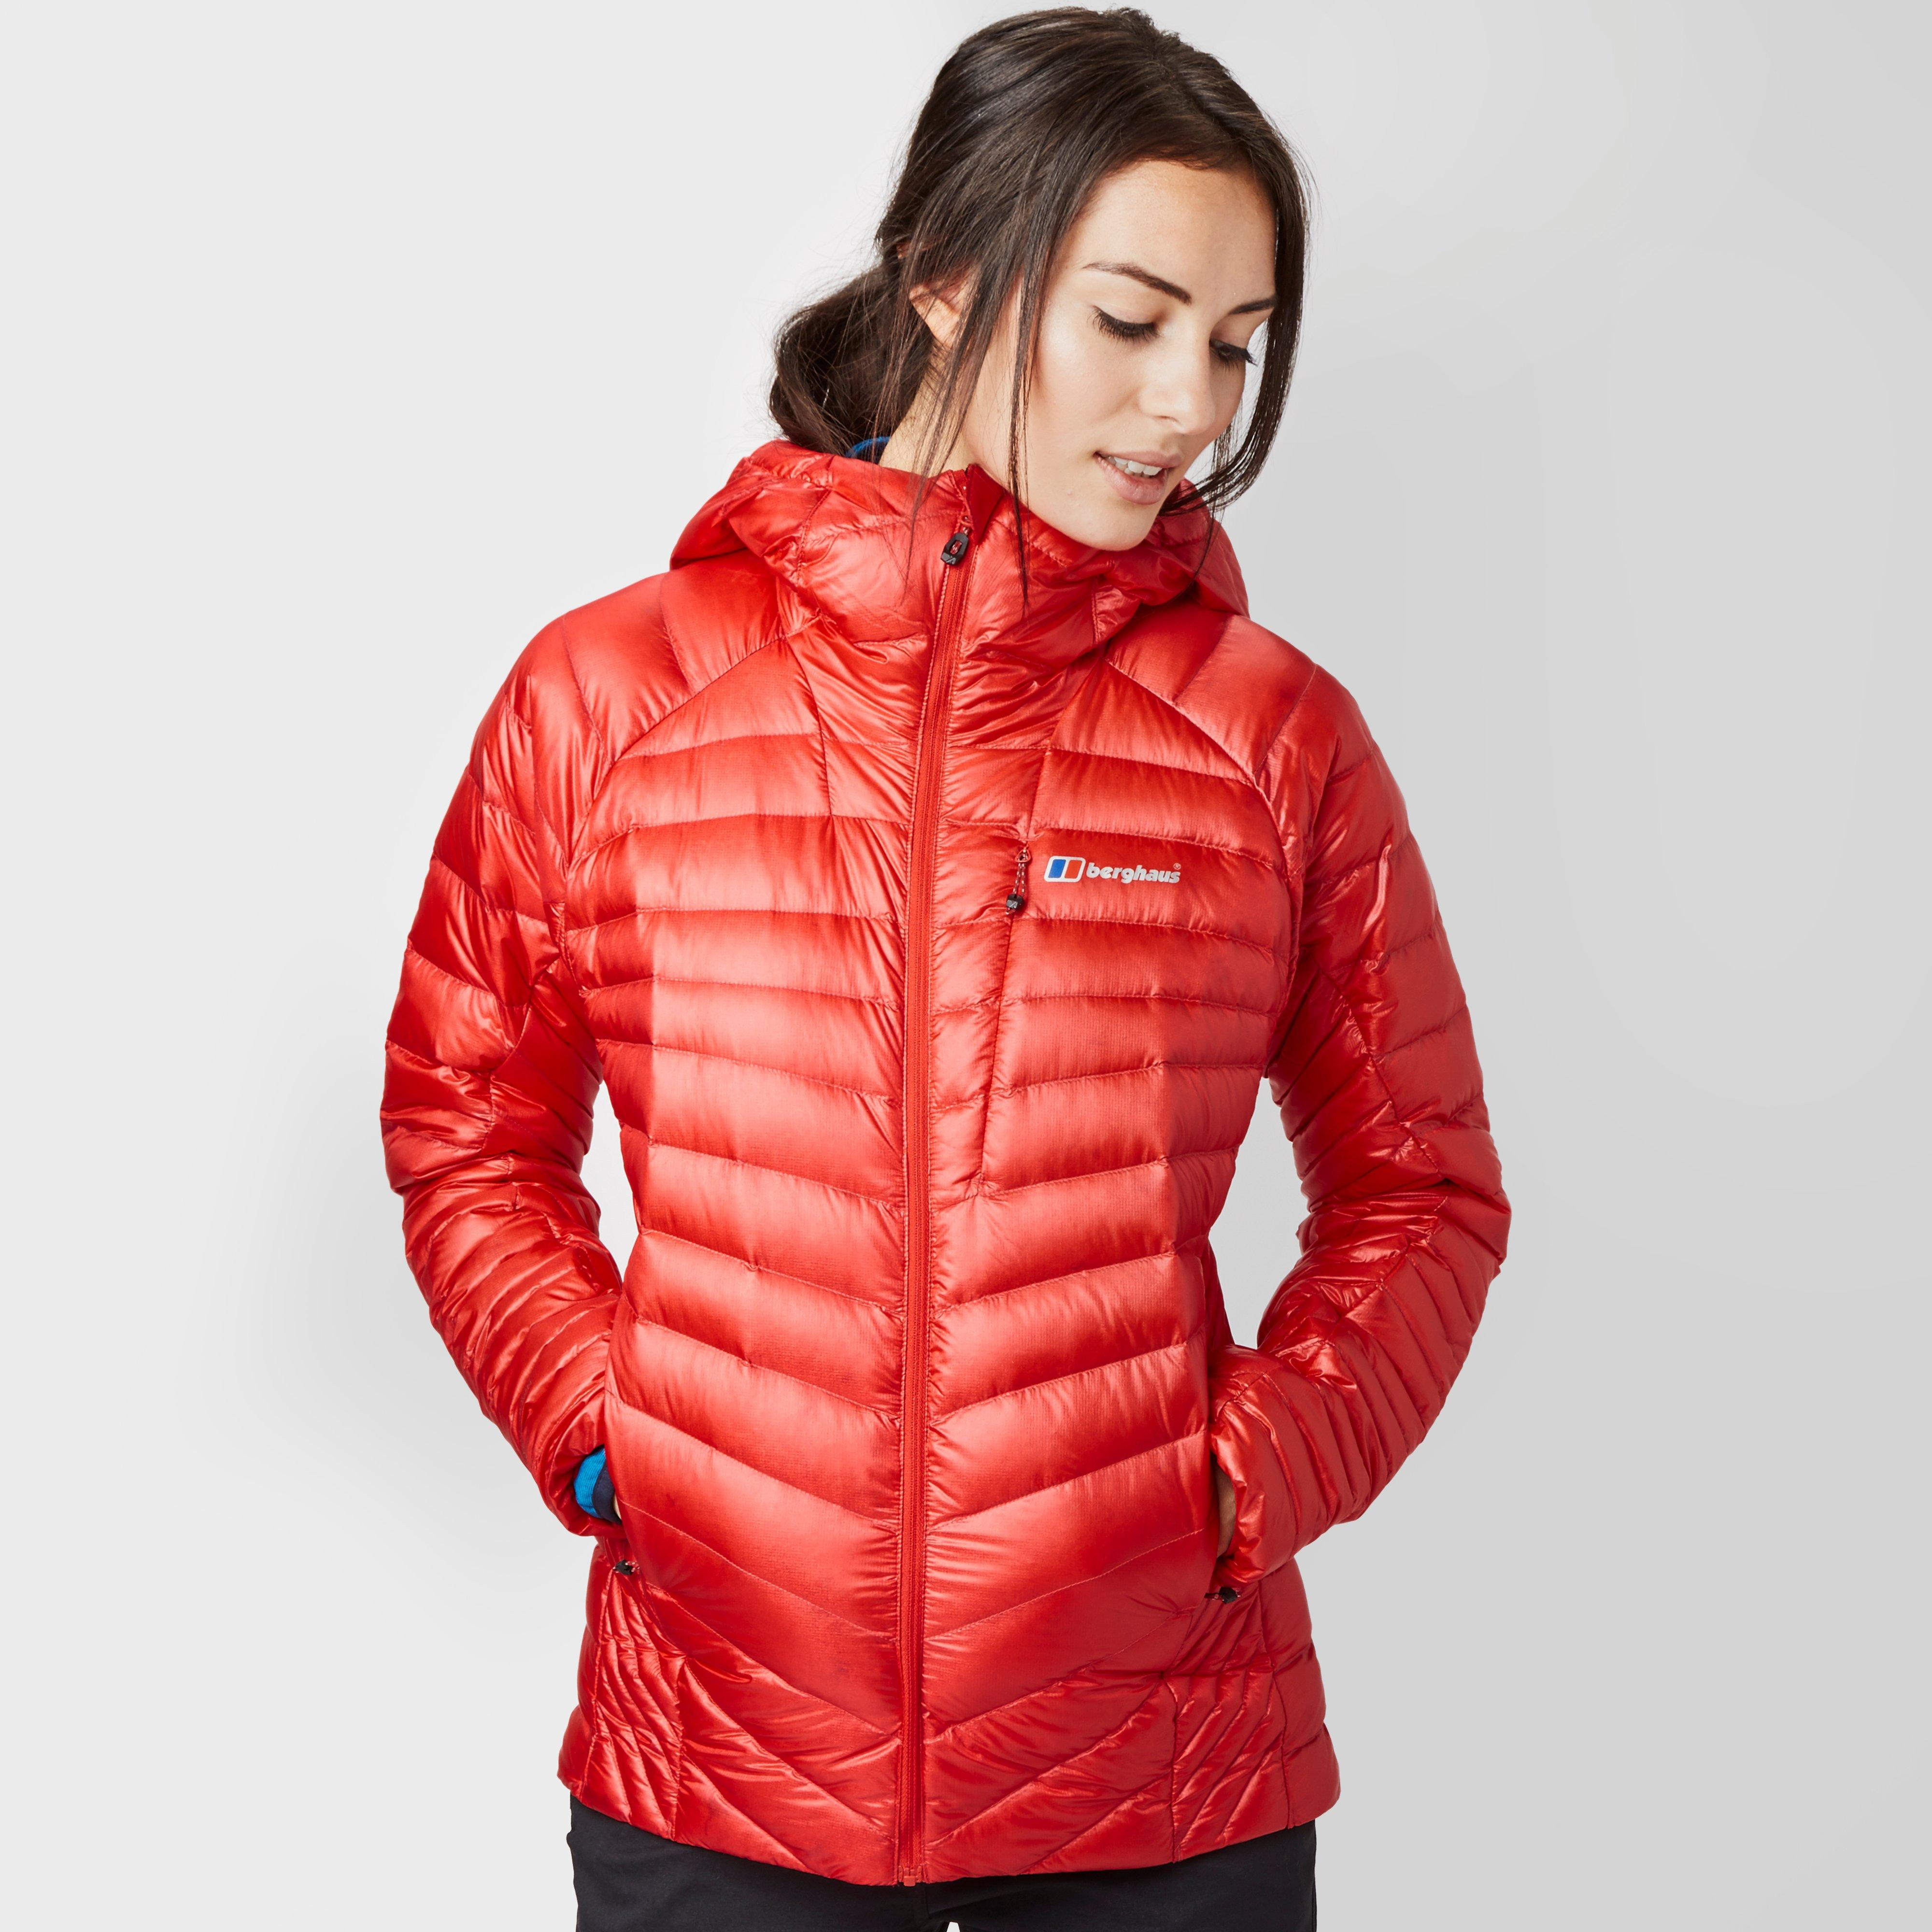 Berghaus down jacket | Shop for cheap Clothing & Accessories and ...